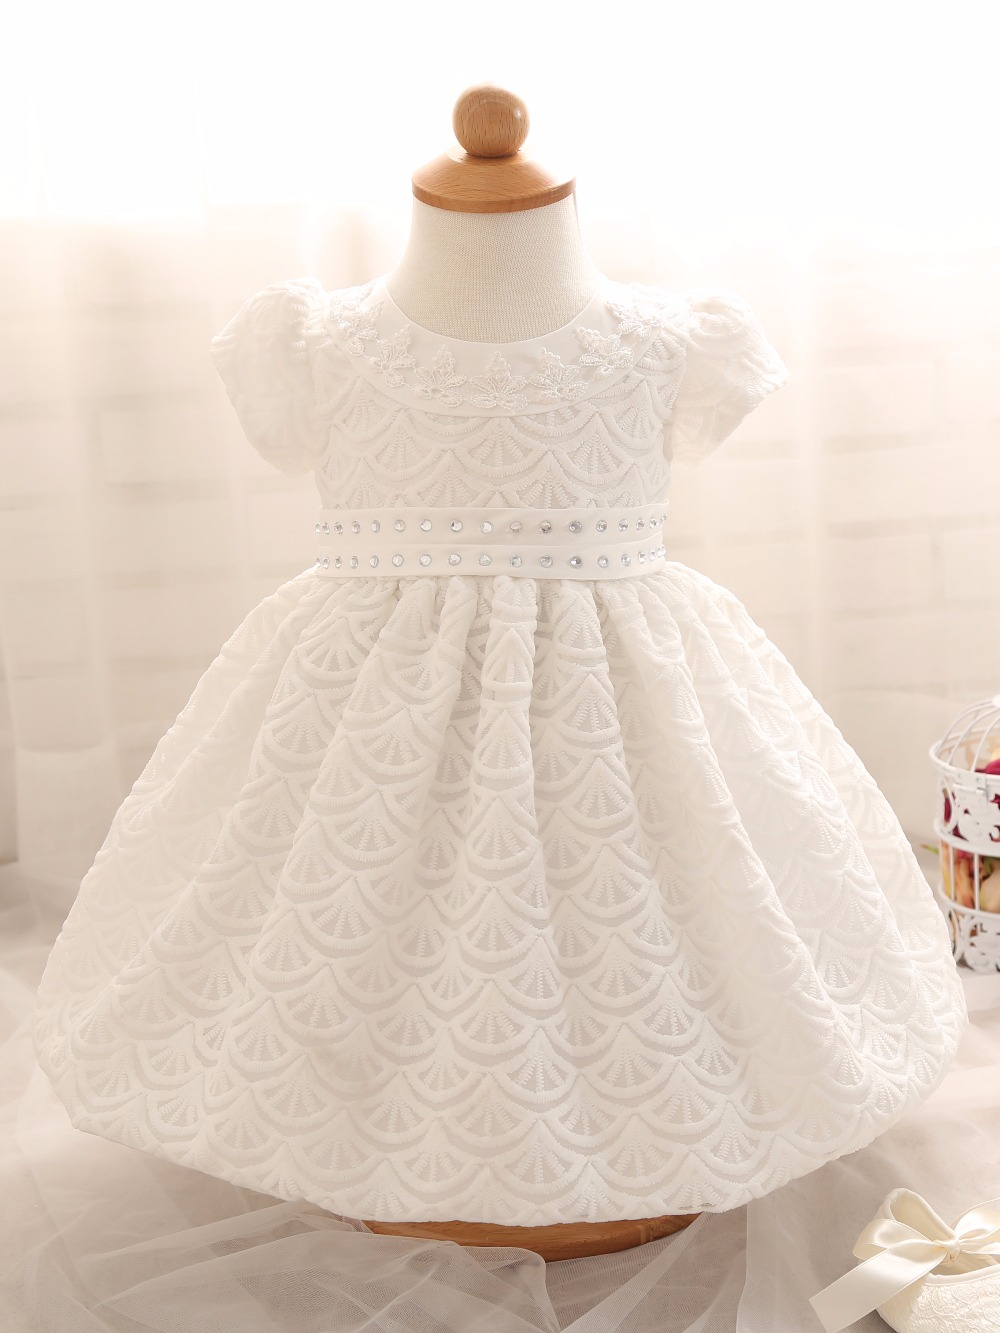 84b626db2e 1st Birthday Dress For Baby Girl Online Shopping | RLDM